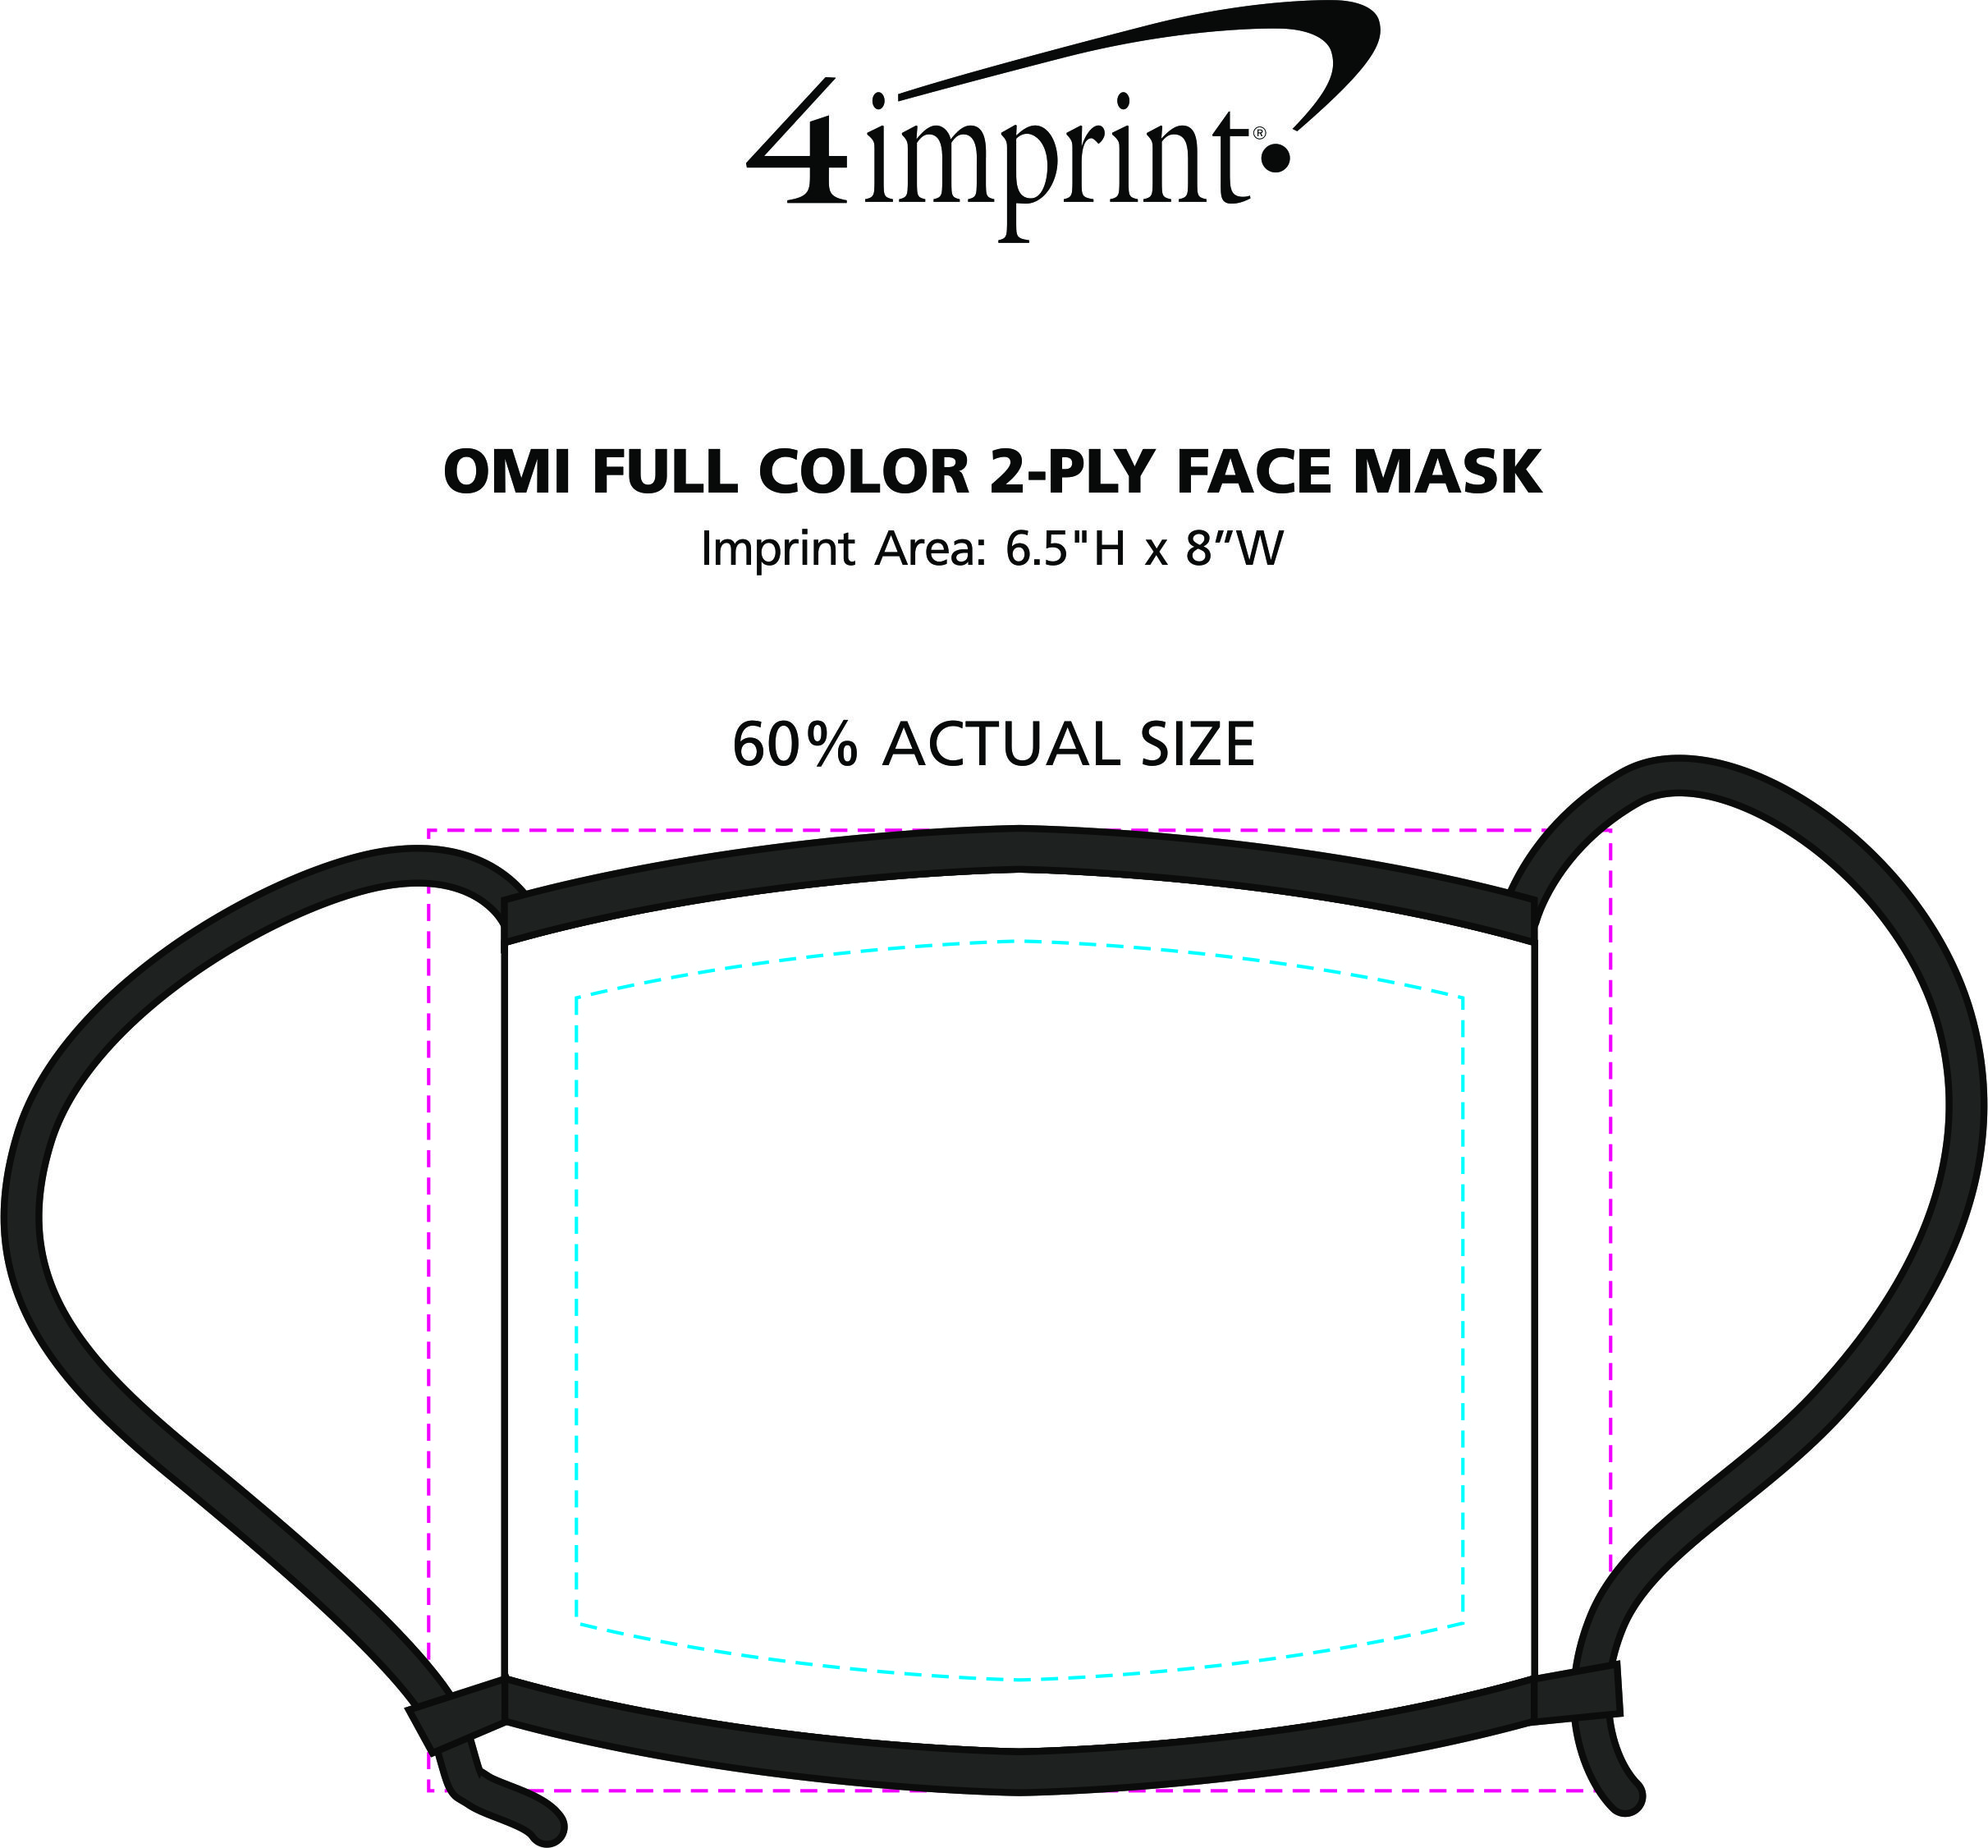 Imprint Area of Omi Full Color 2-Ply Face Mask